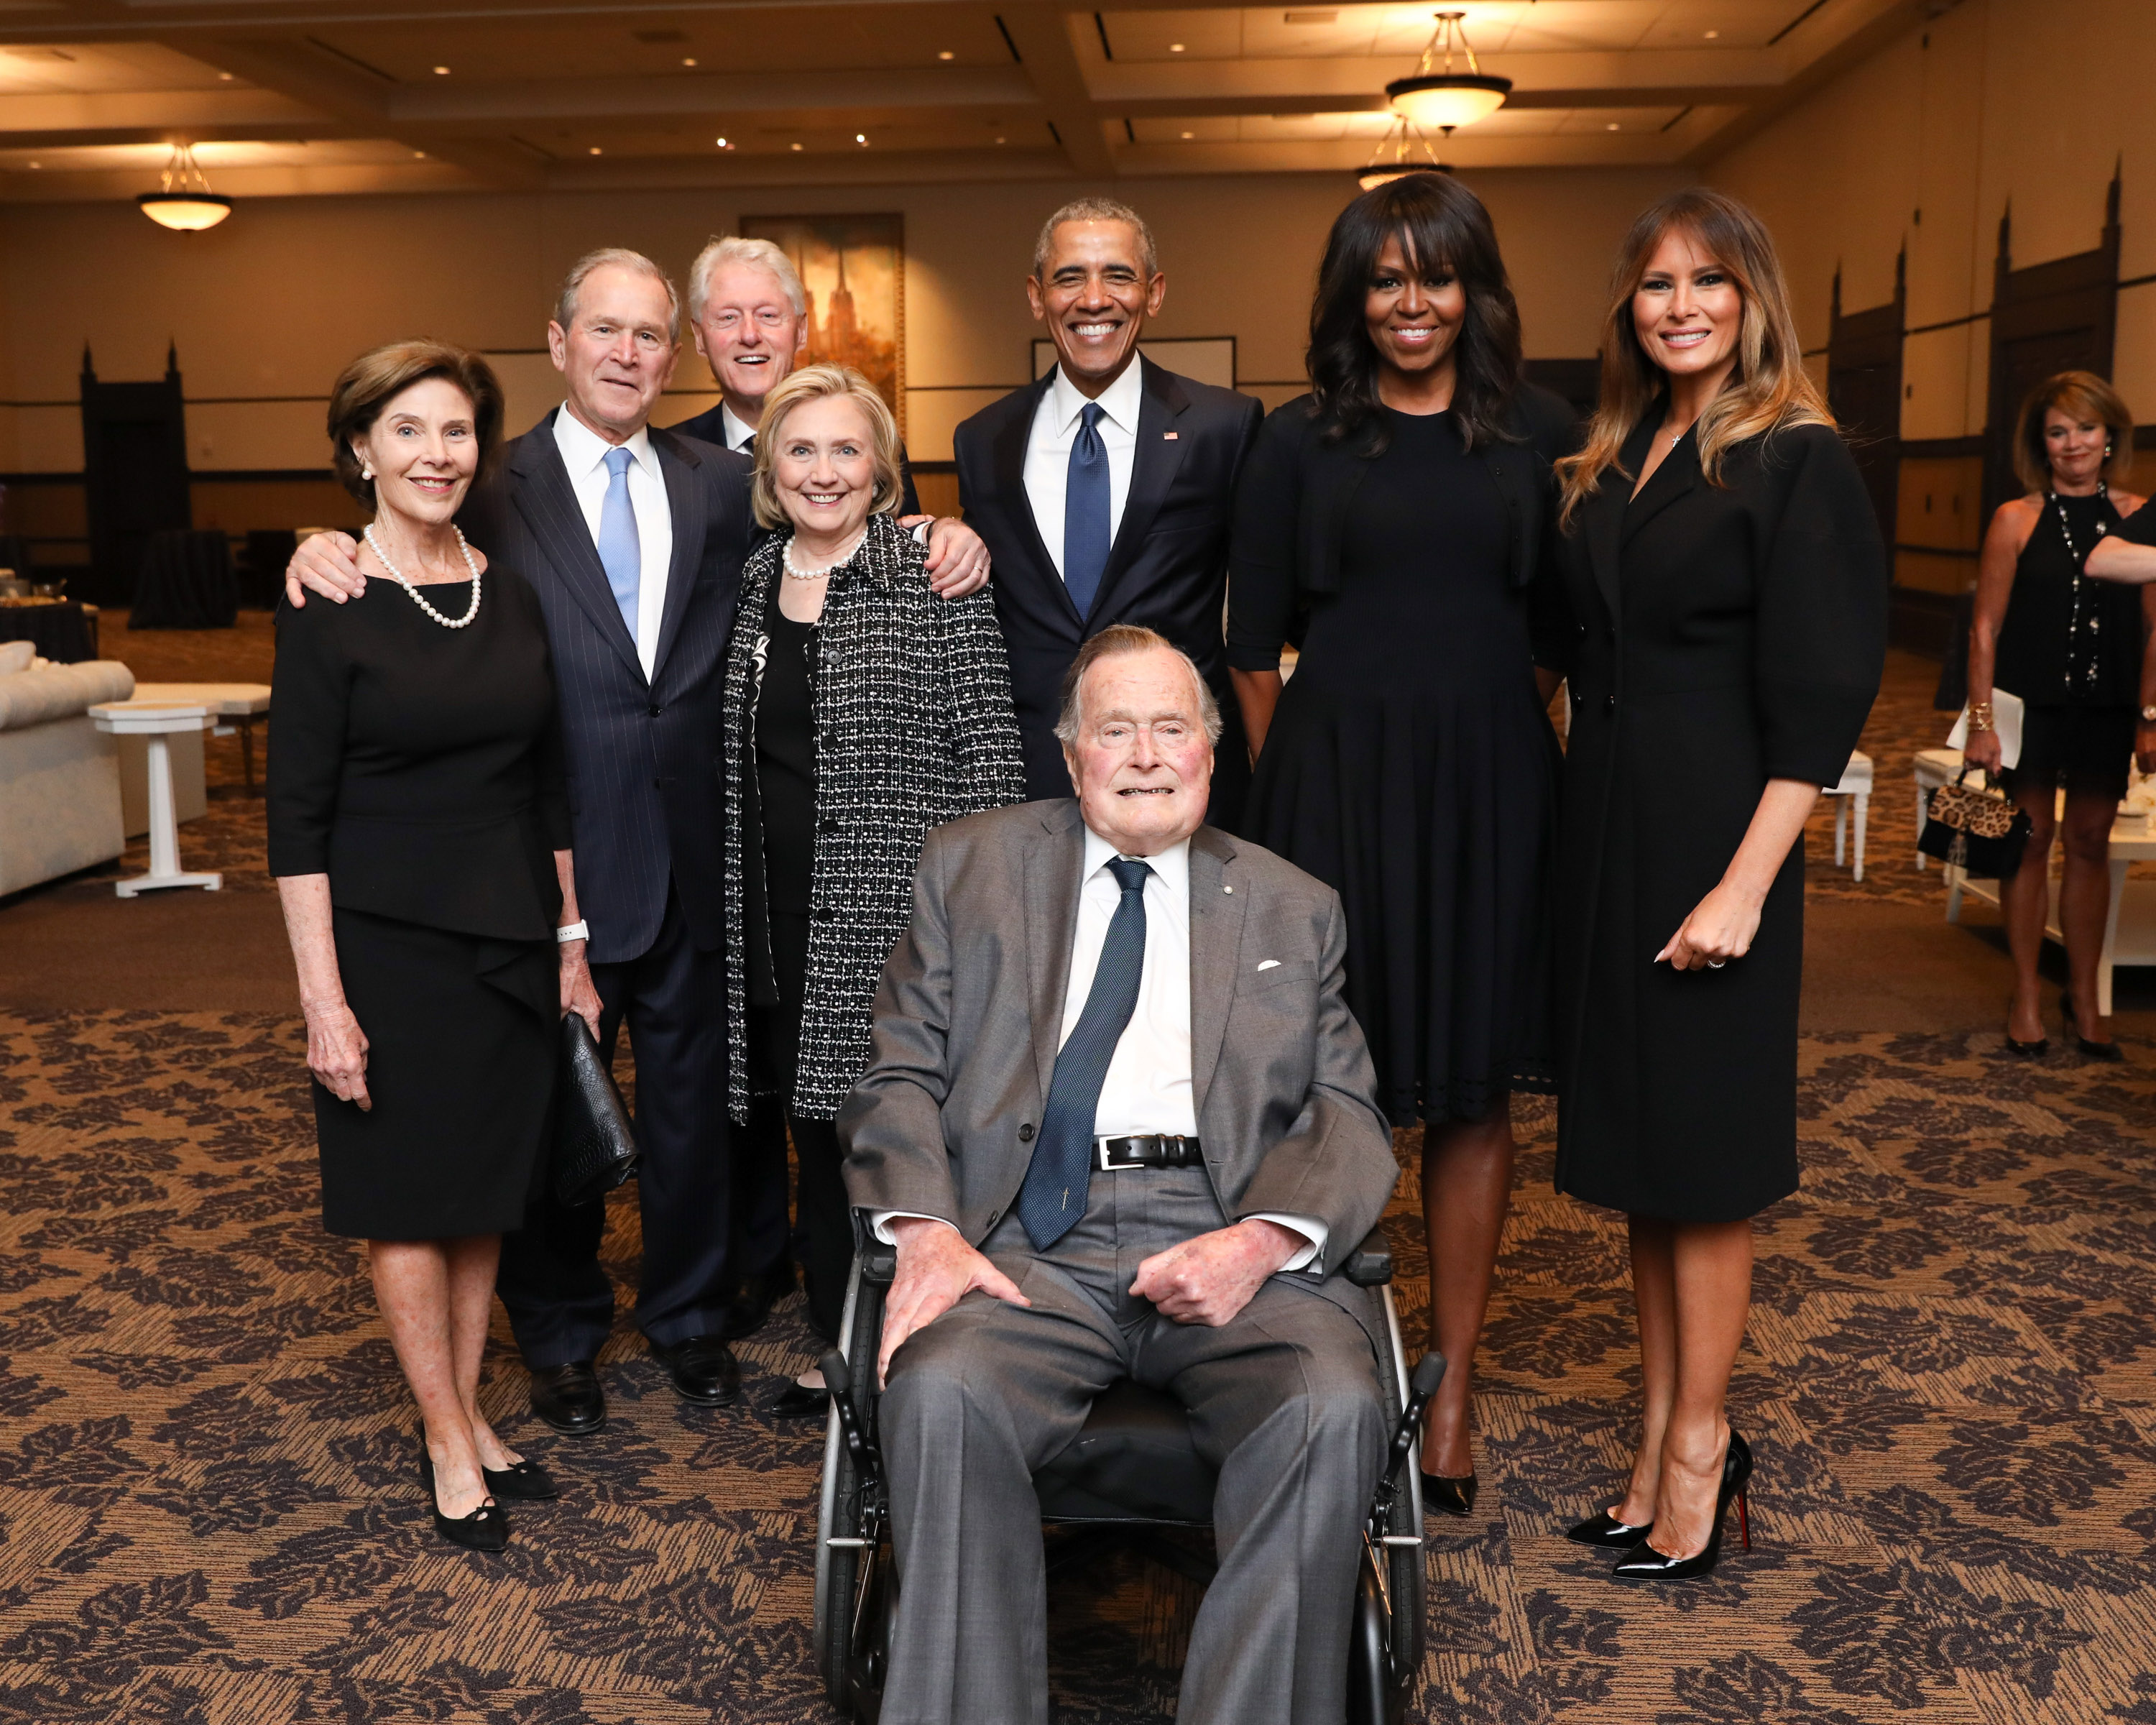 In this handout provided by Paul Morse/George W. Bush Presidential Center, (L-R) Former first lady Laura Bush, former President George W. Bush, former President Bill Clinton, former Secretary of State and first lady Hilary Clinton, former President Barack Obama, former President George H. W. Bush, former first lady Michelle Obama and current first lady Melania Trump pose for a group photo at the funeral ceremony for the late first lady Barbara Bush.